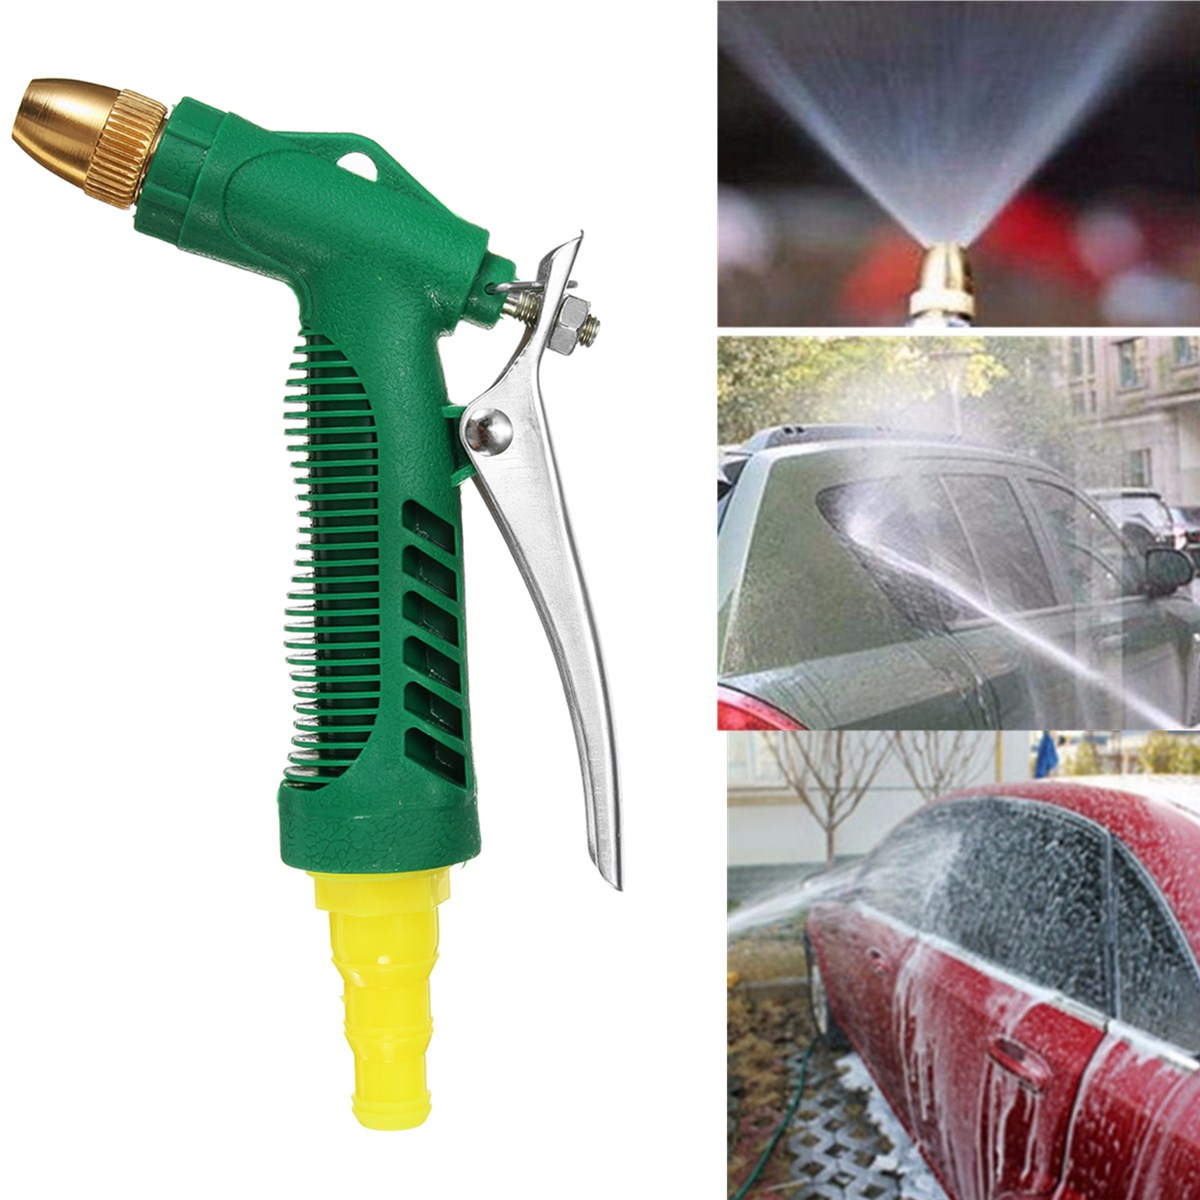 High Pressure Hose Nozzle Water Sprayer Lawn & Garden Watersavin 3 Adjustable Watering Patterns for Plants Pets Car Wash Tool